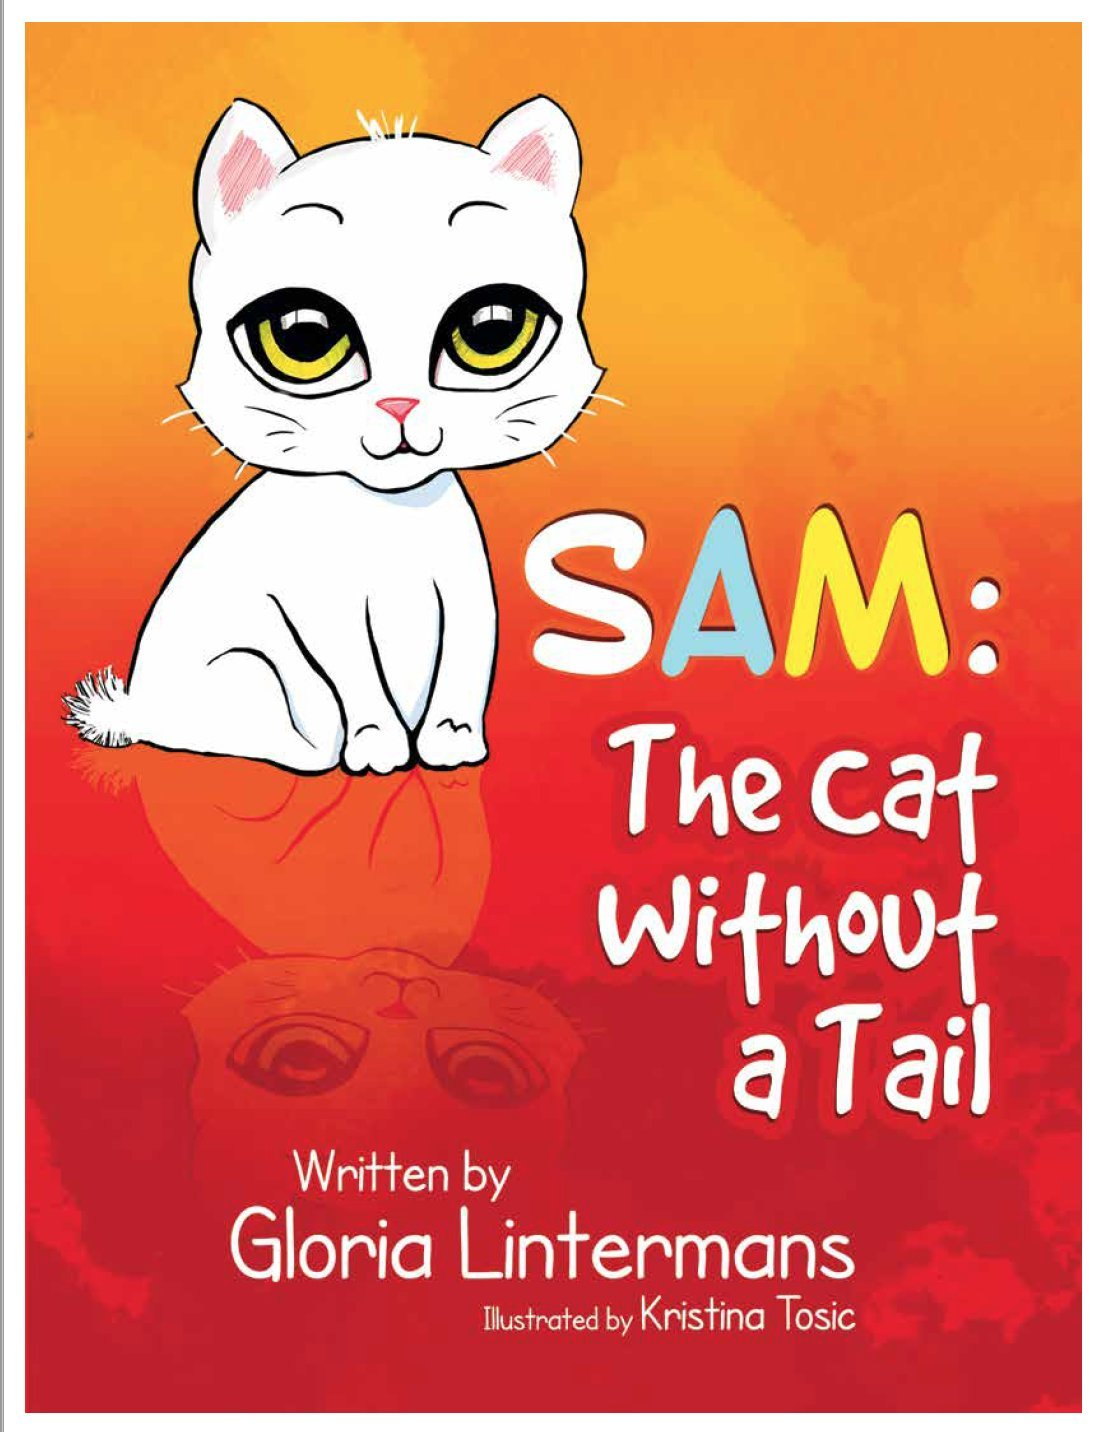 Sam The Cat Without a Tail.jpg